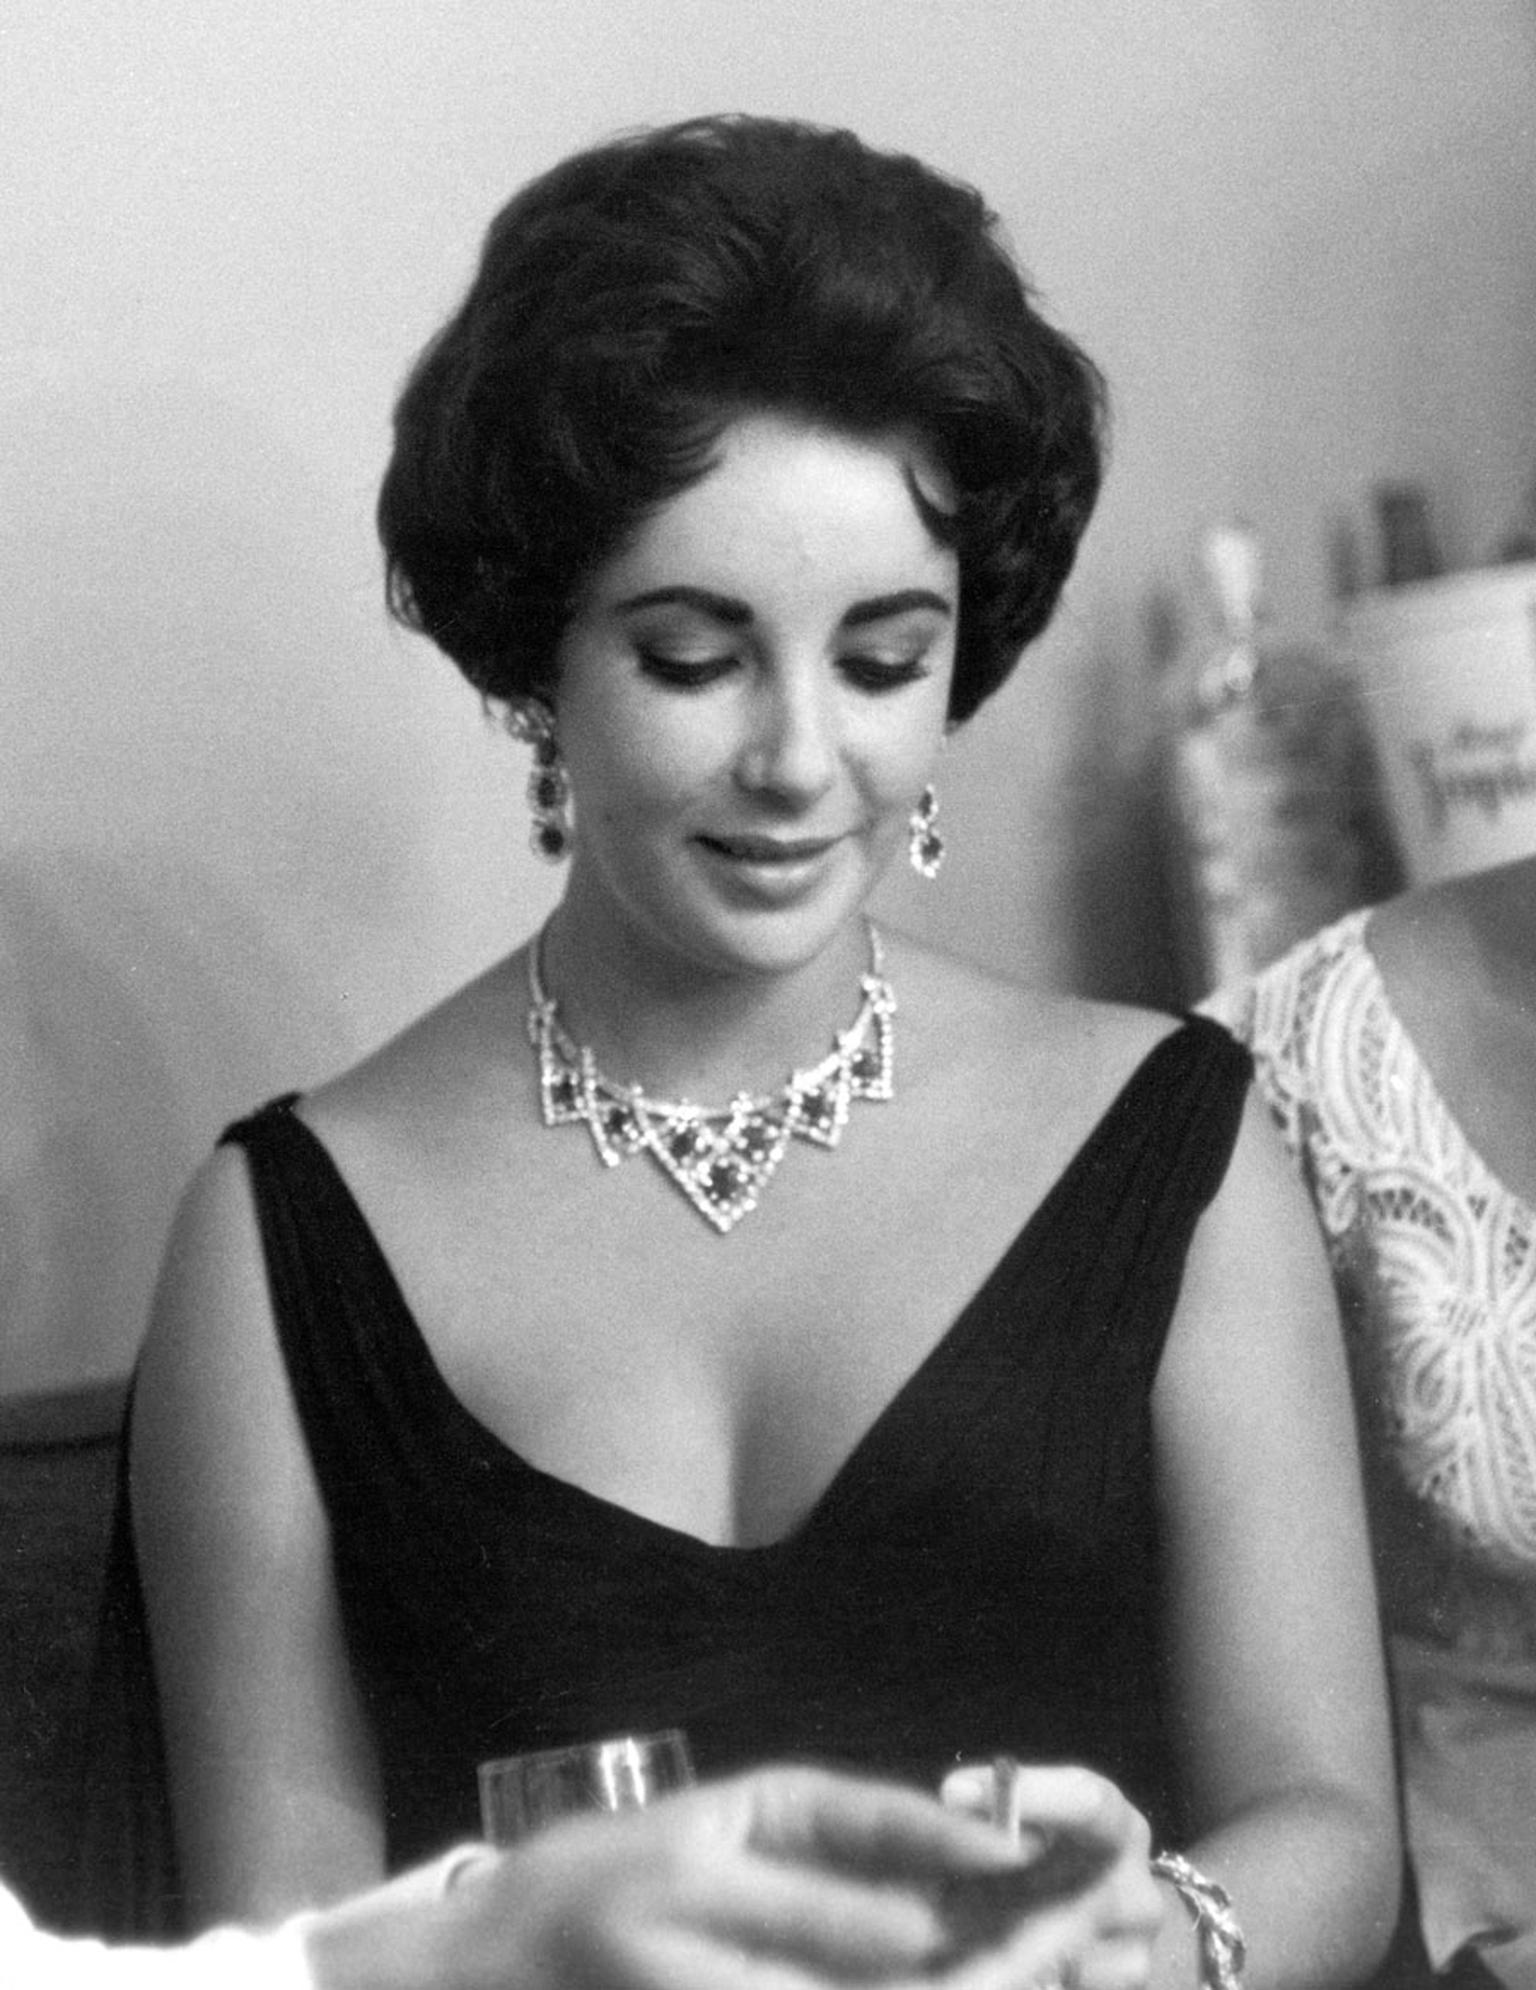 Cartier supplies jewellery for BBC4 biopic about Elizabeth Taylor ...